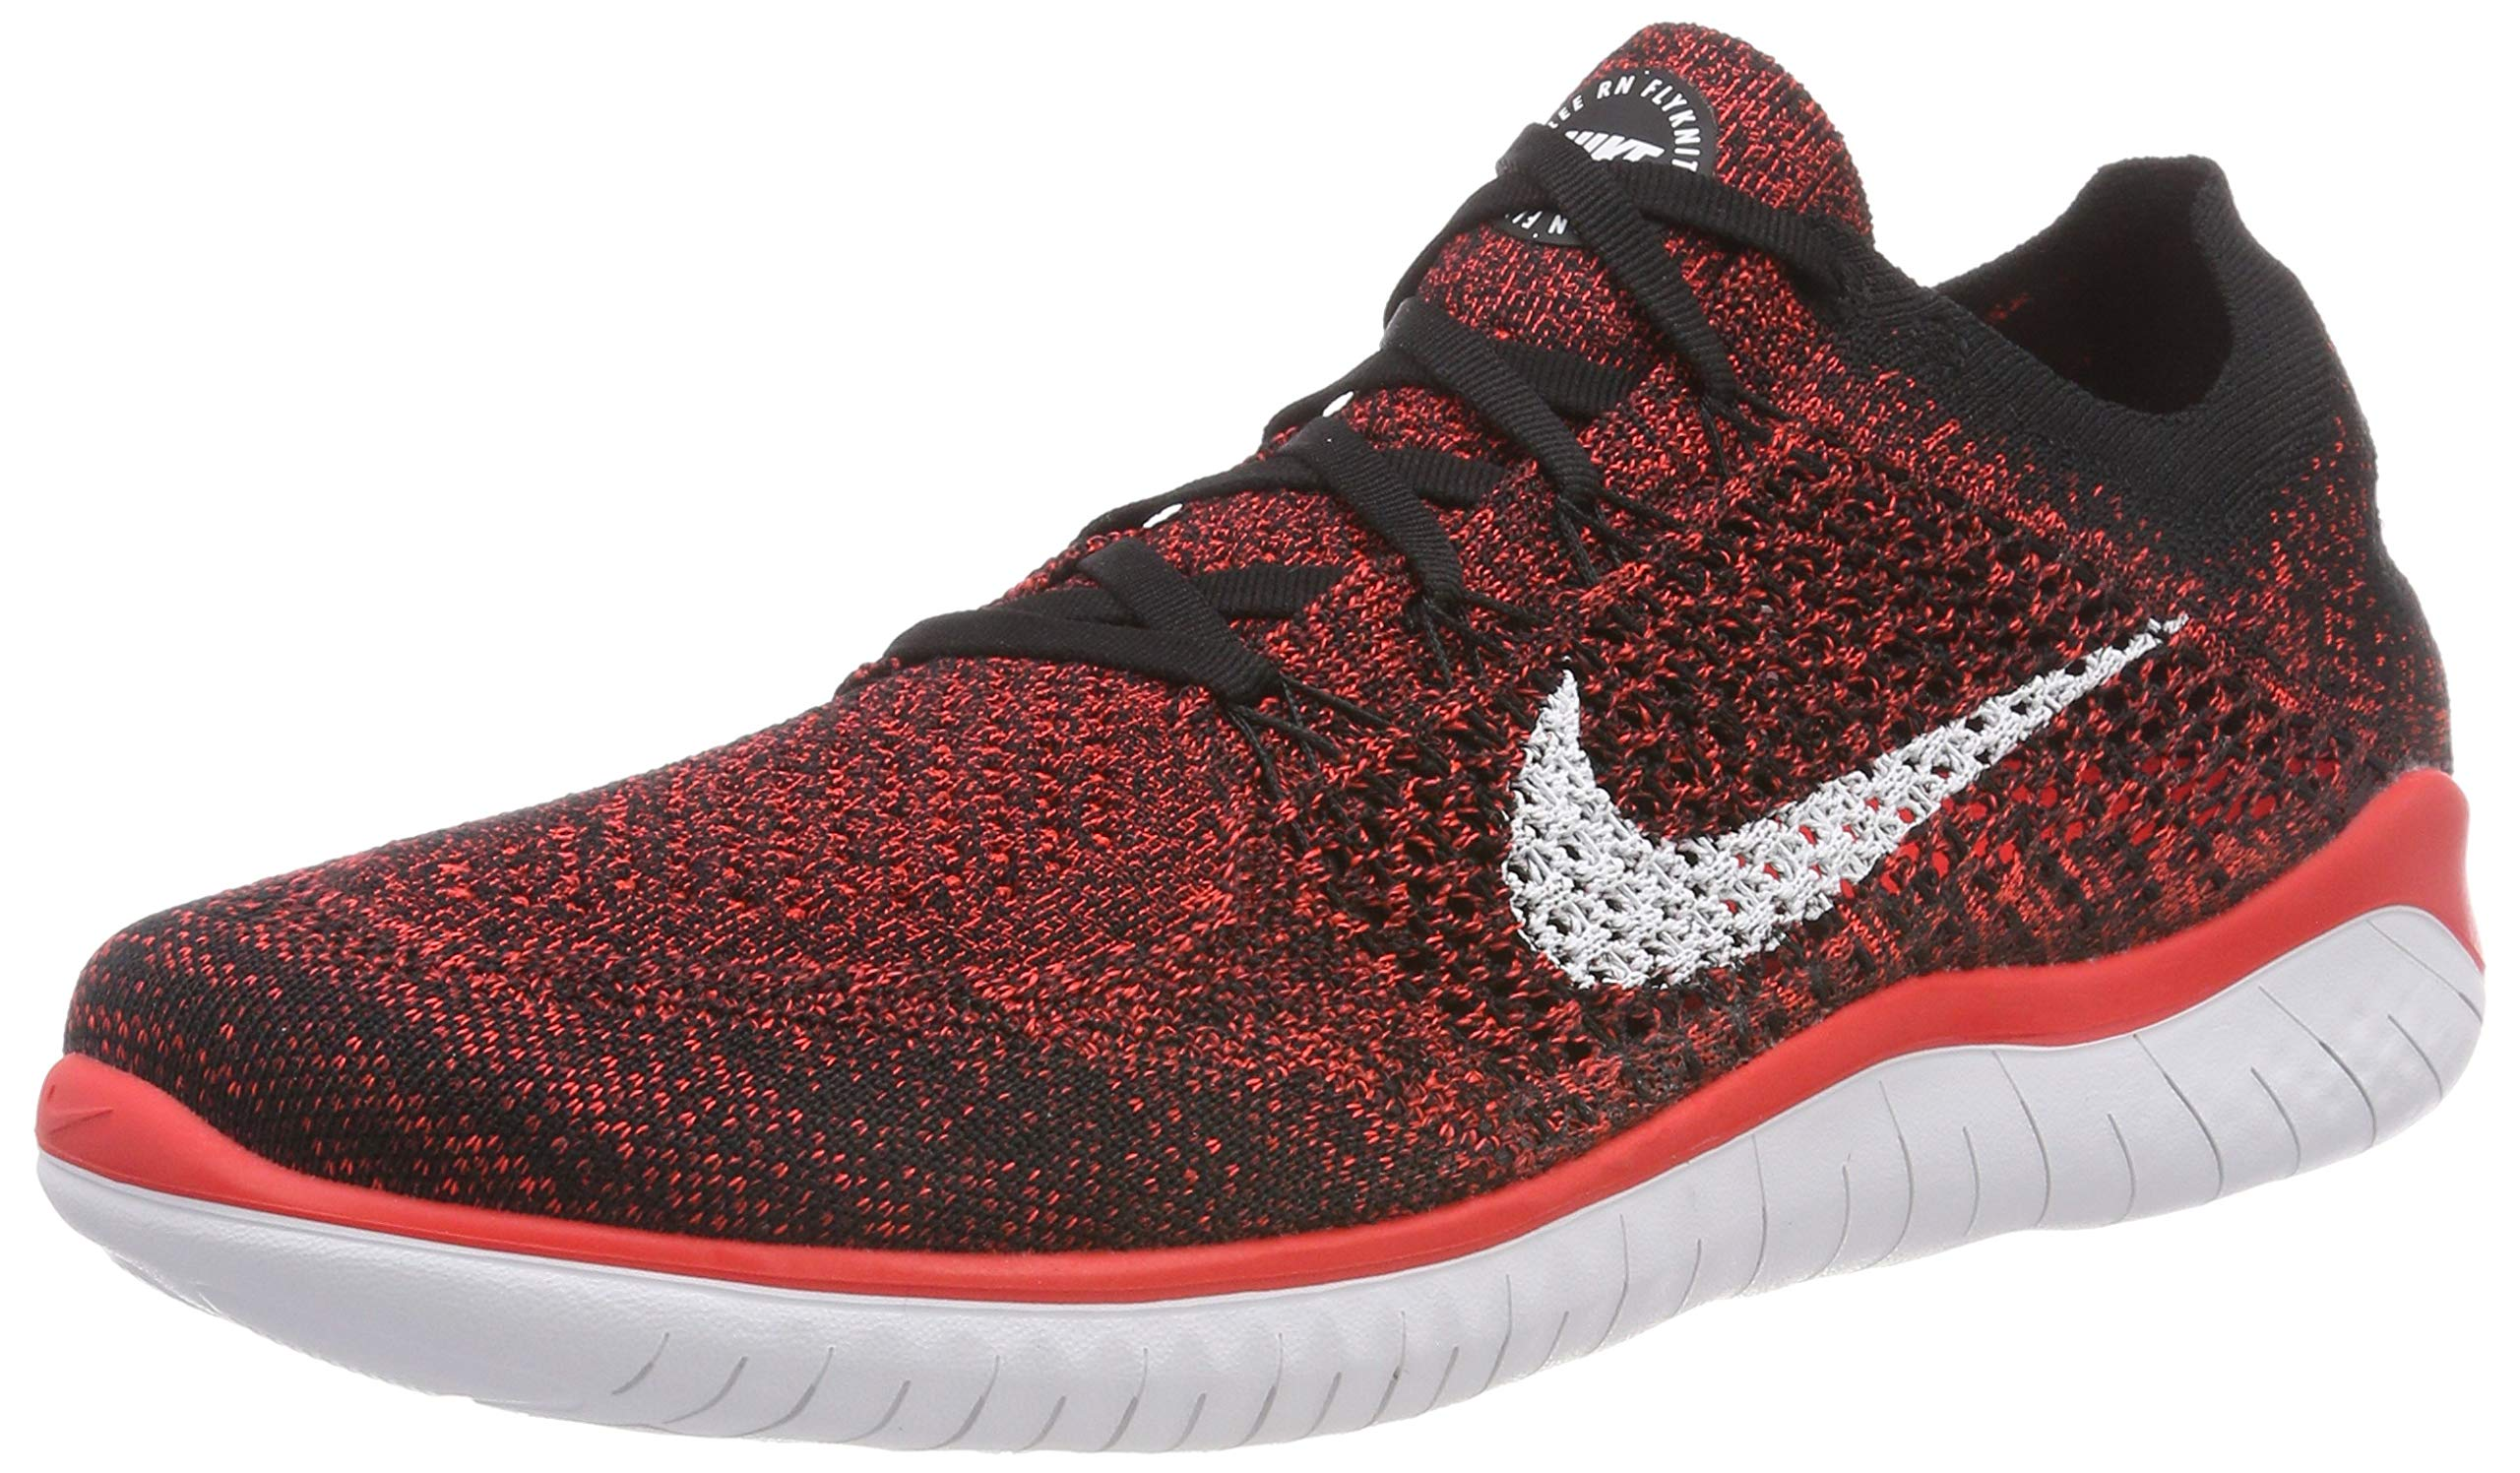 8deaf509 Nike Men's Free RN Flyknit Running Shoe (11.5 M US, Bright  Crimson/White-Black)